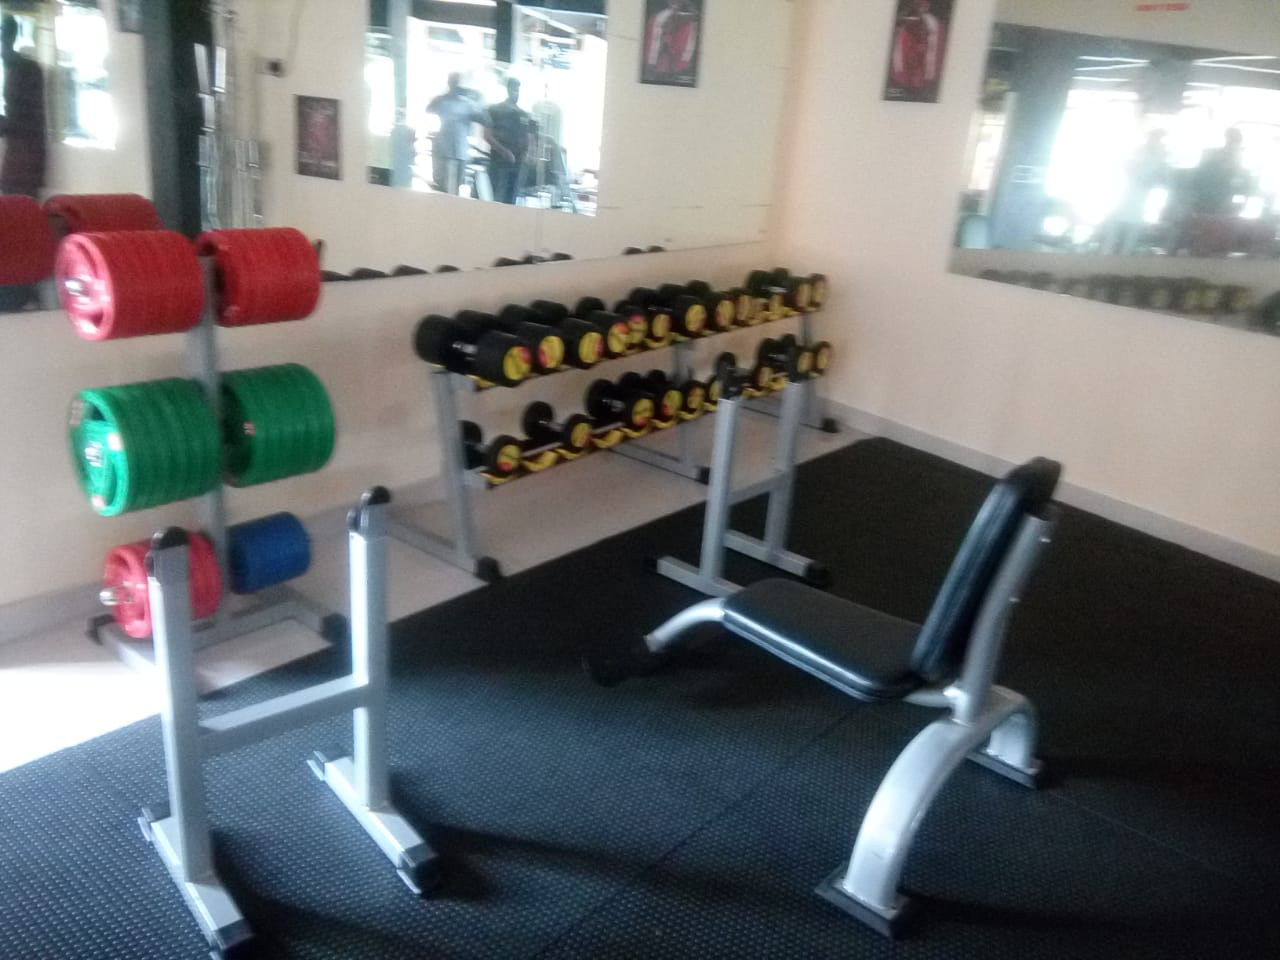 Fitness Equipment in Trivandrum, Home gym, Home gym equipment in Trivandrum, Gym equipment in Trivandrum, Treadmill